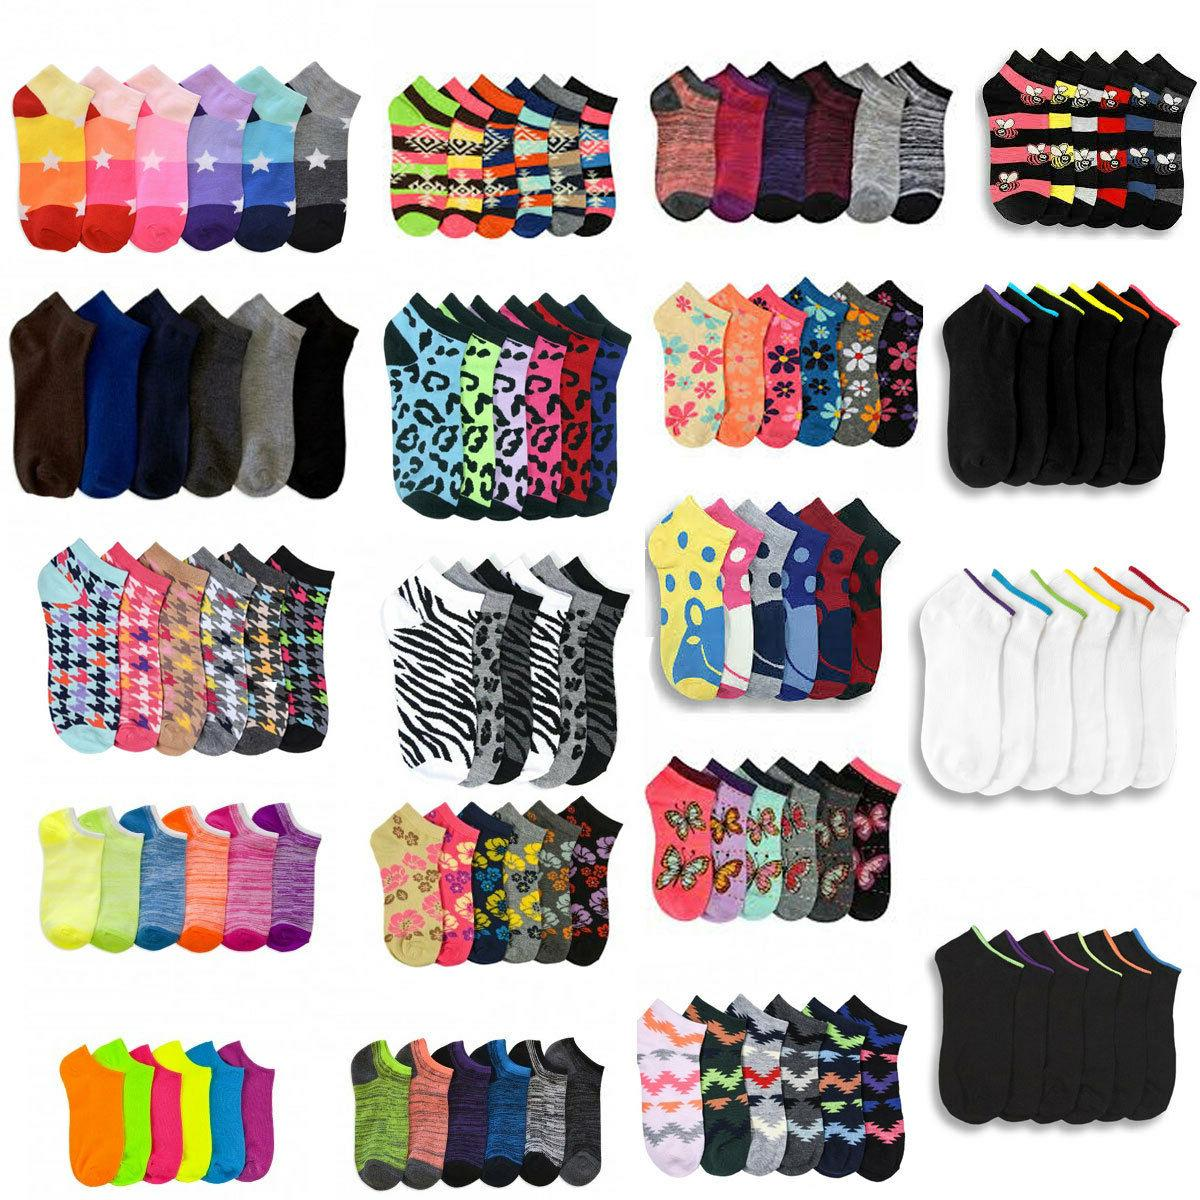 12 600 women ankle socks assorted design